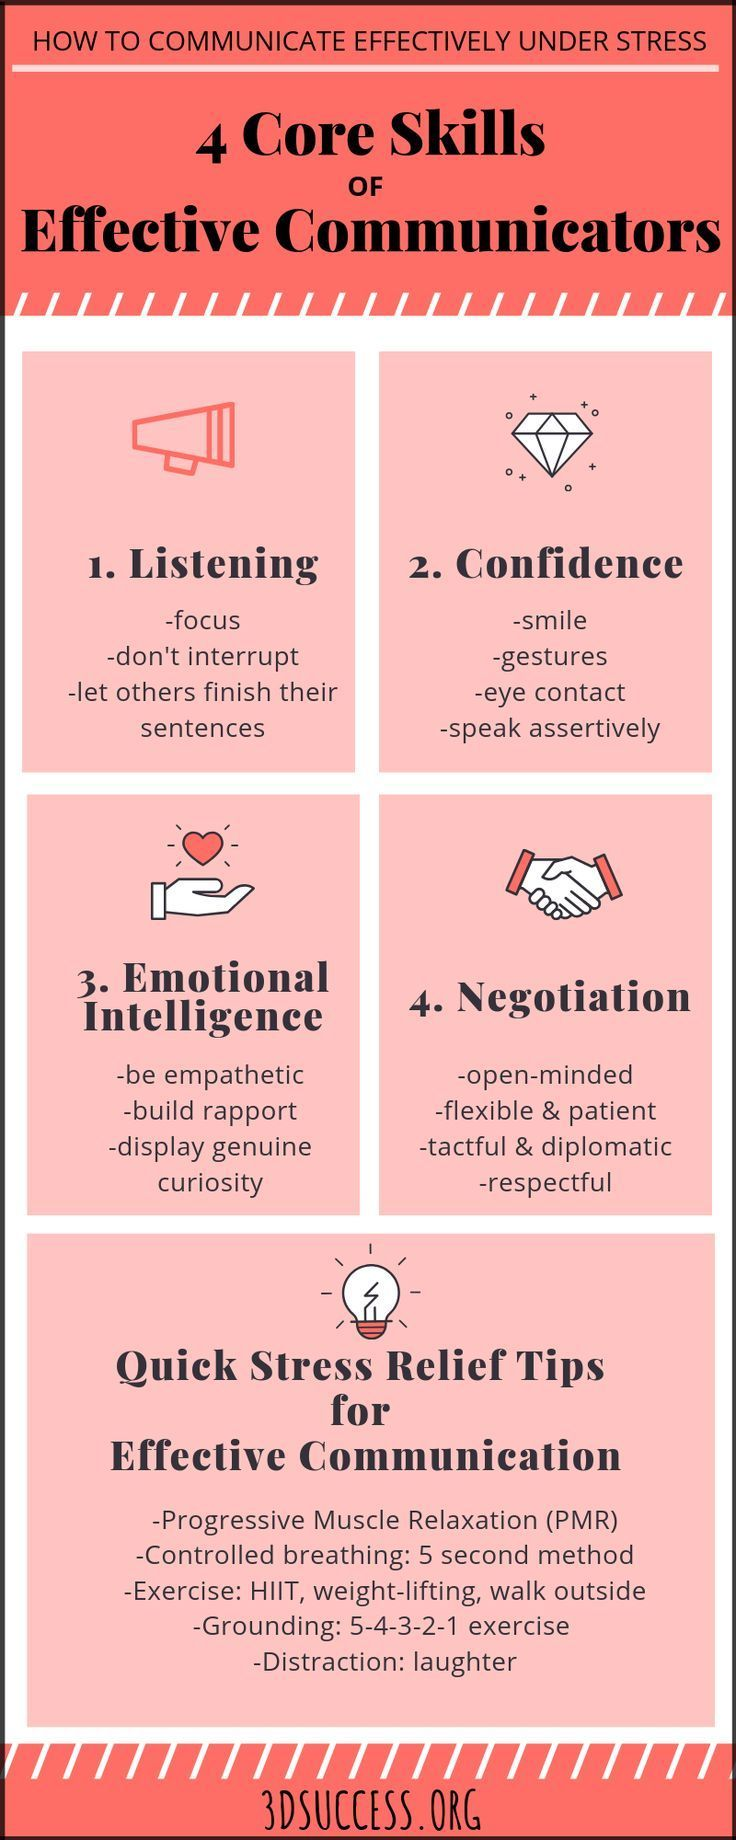 Effective communication tips! #improveitchi #communication